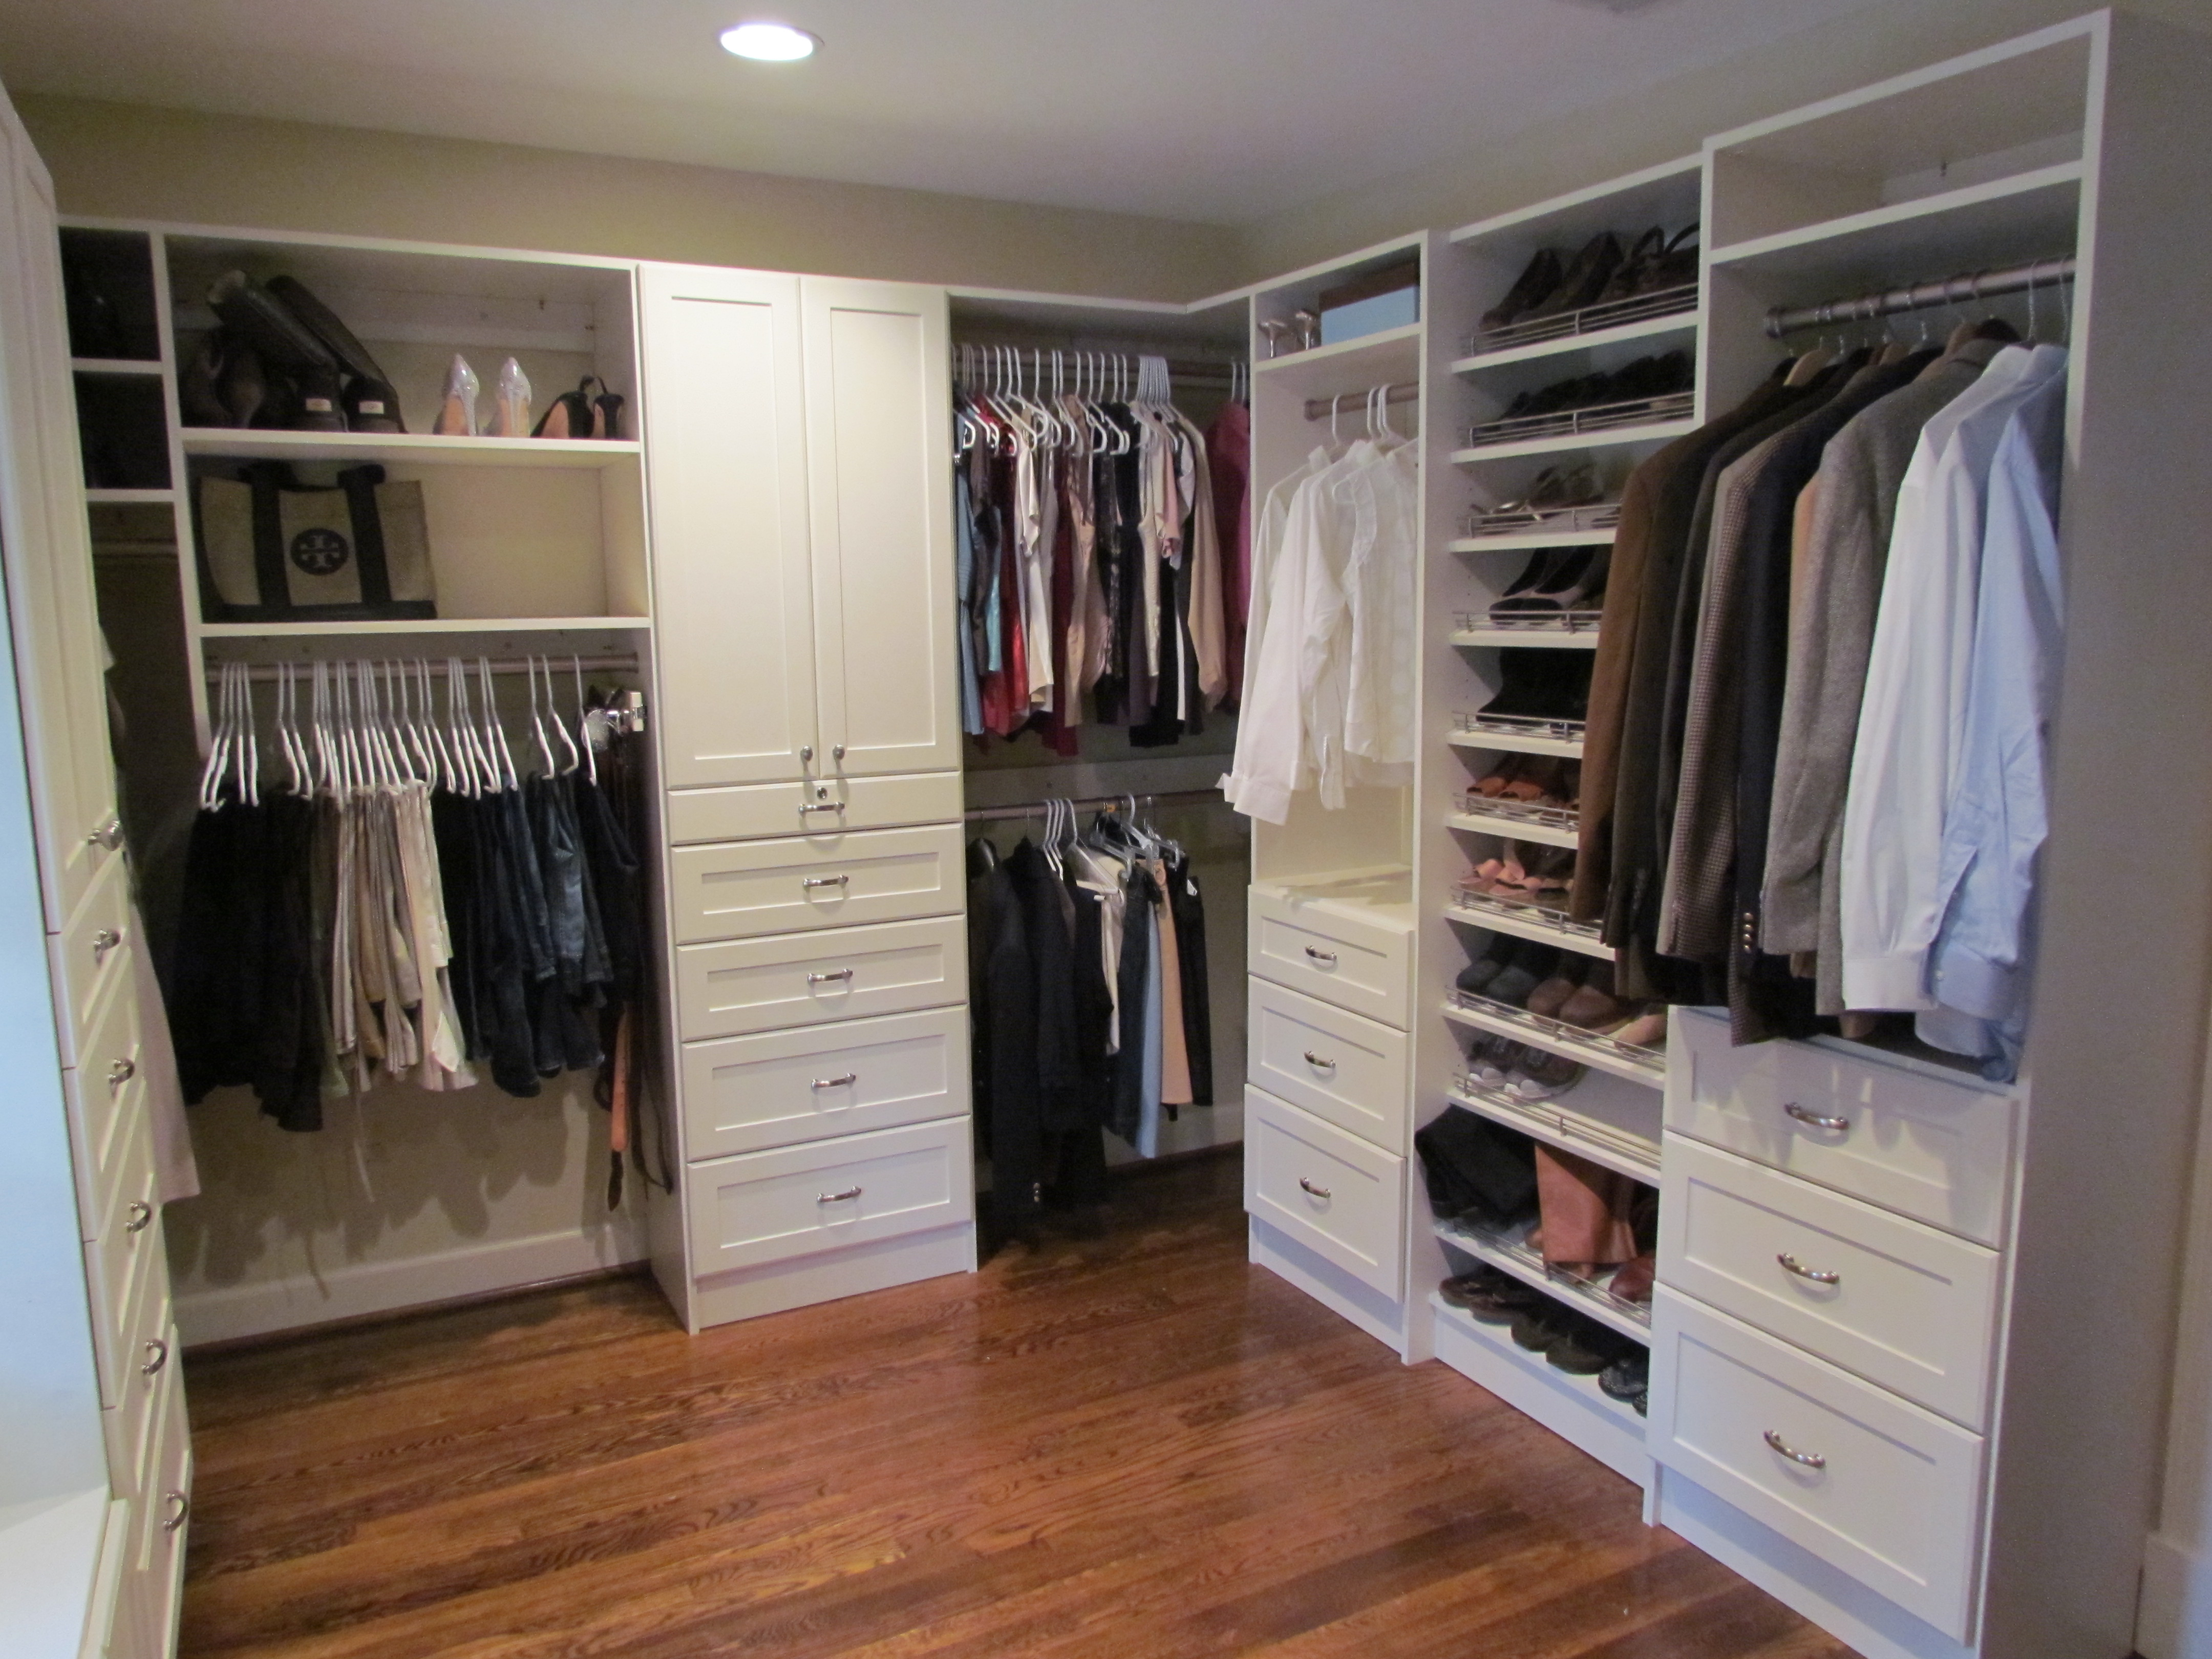 Atlanta closet storage solutions chamblee ga 30341 - Storage solutions for small closets ...